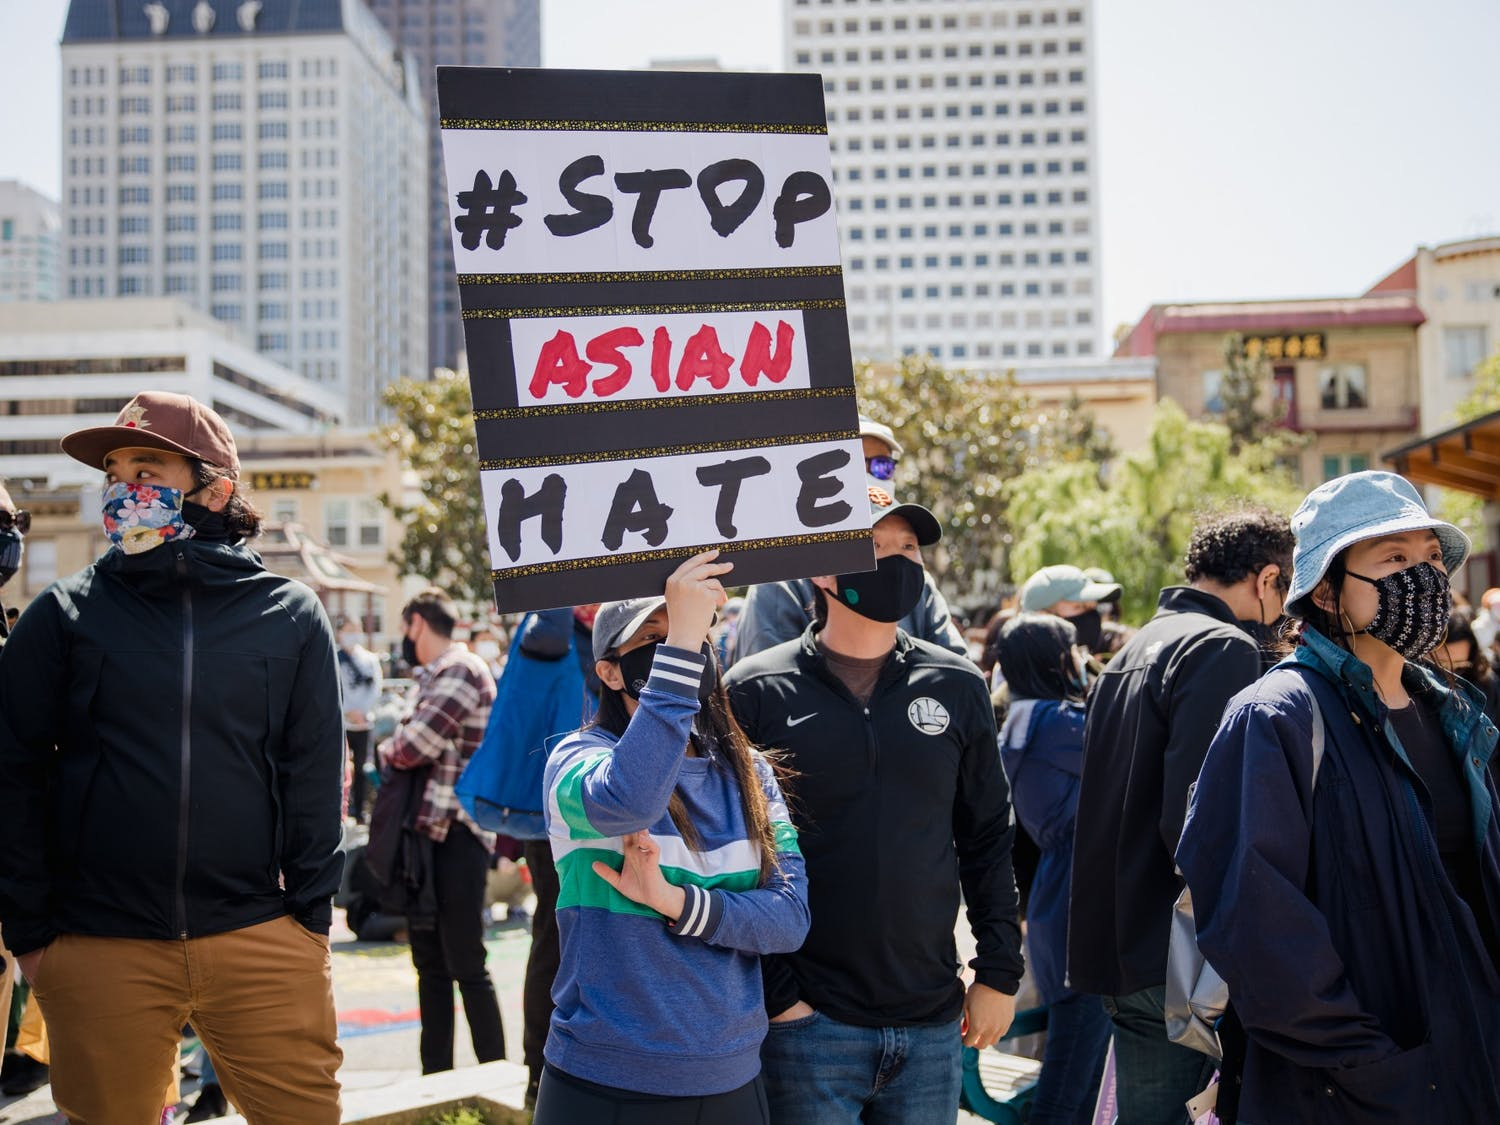 There were 3,800 anti-Asian hate crimes in 2020, according to Stop AAPI Hate.